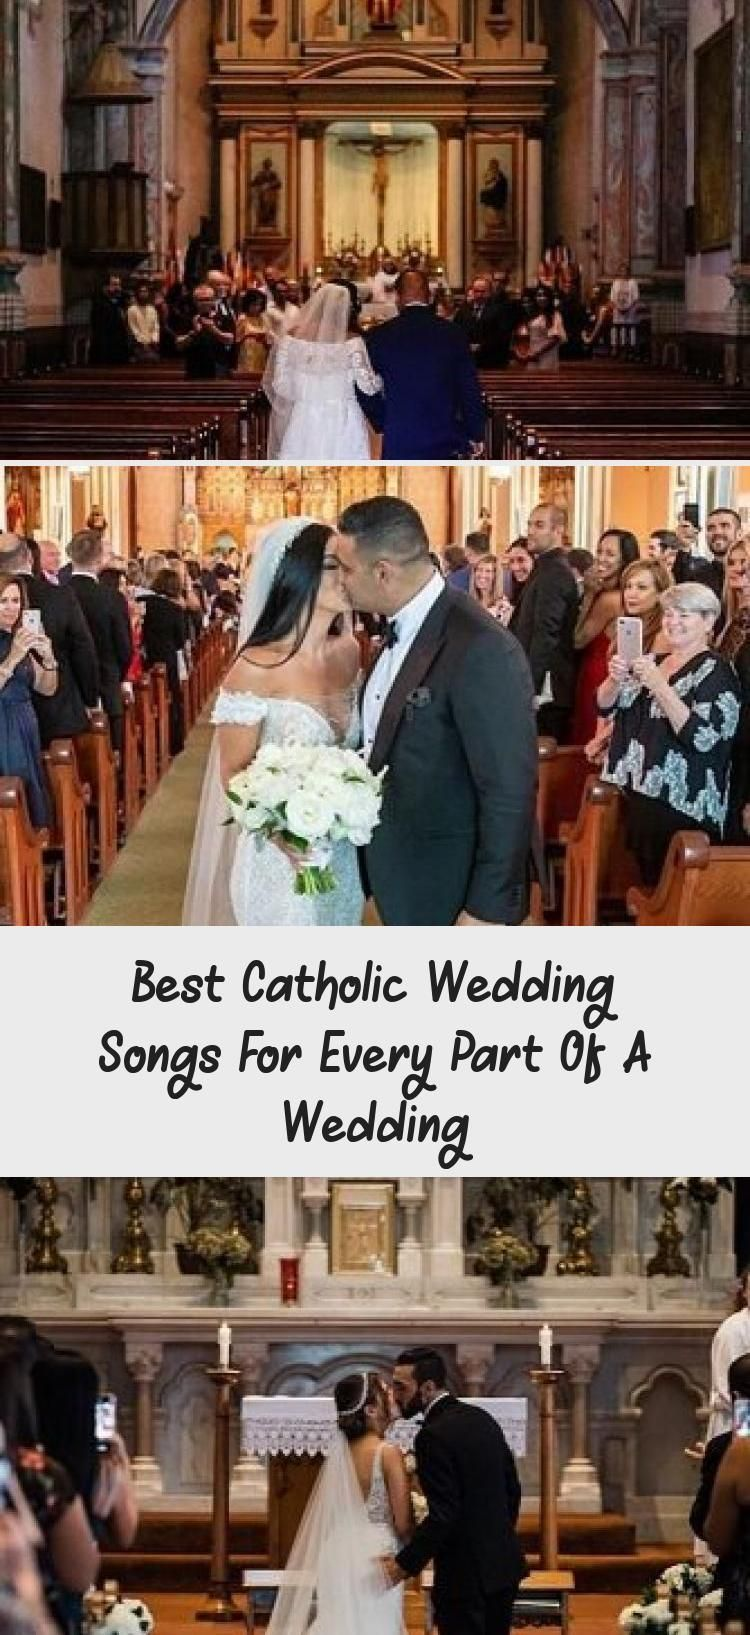 Guide to the Best Catholic Wedding Songs In 2019